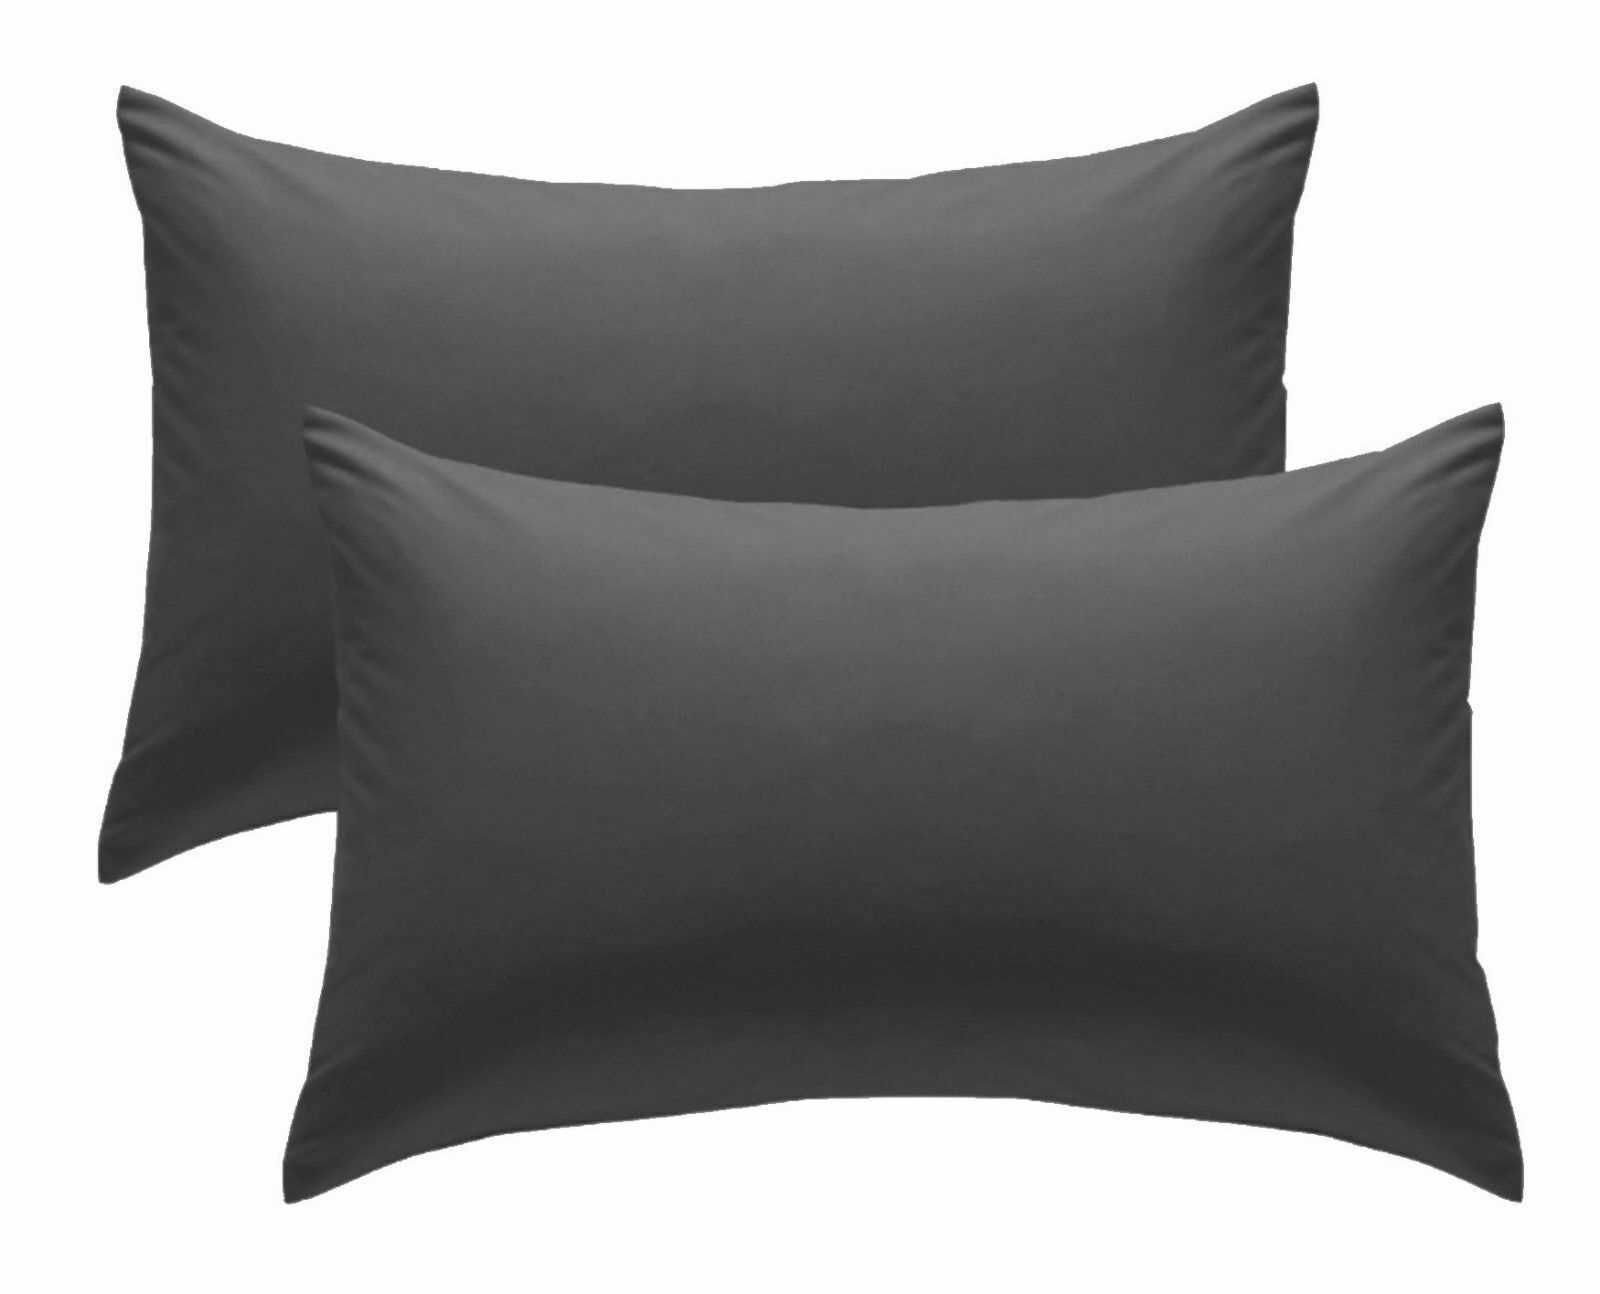 Black Plain Pillow Cases Cotton Pair Housewife Case Cover 100% Luxury Pack Covers